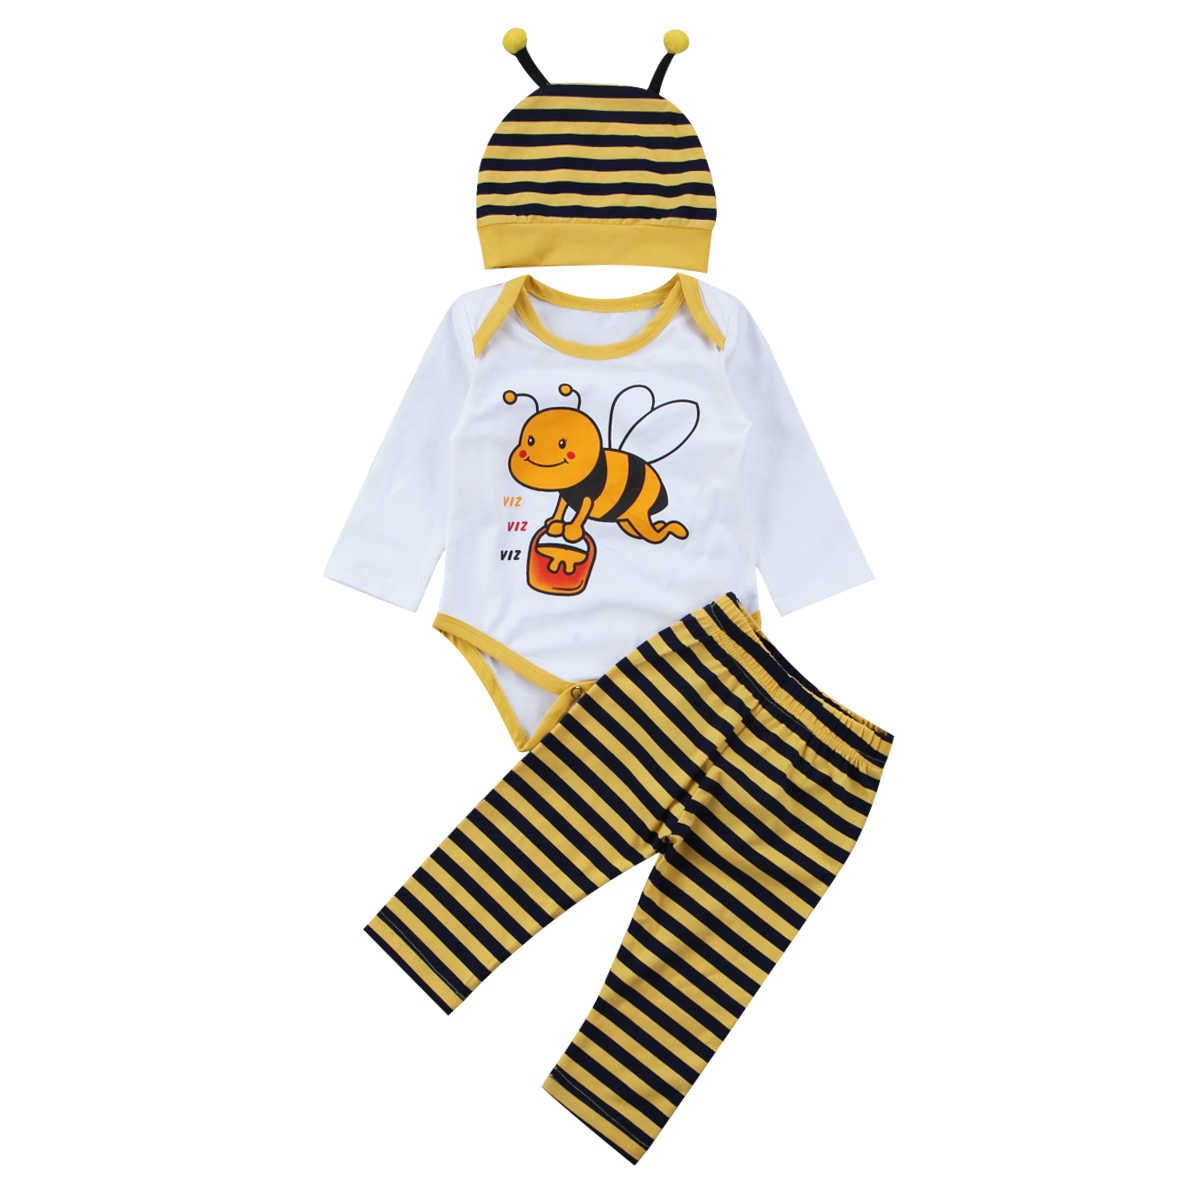 365df7865fae5 3Pcs Newborn Baby Girl Boy Cotton Tops Long Sleeves Little Bee Romper  Jumpsuit Striped Pants Outfits